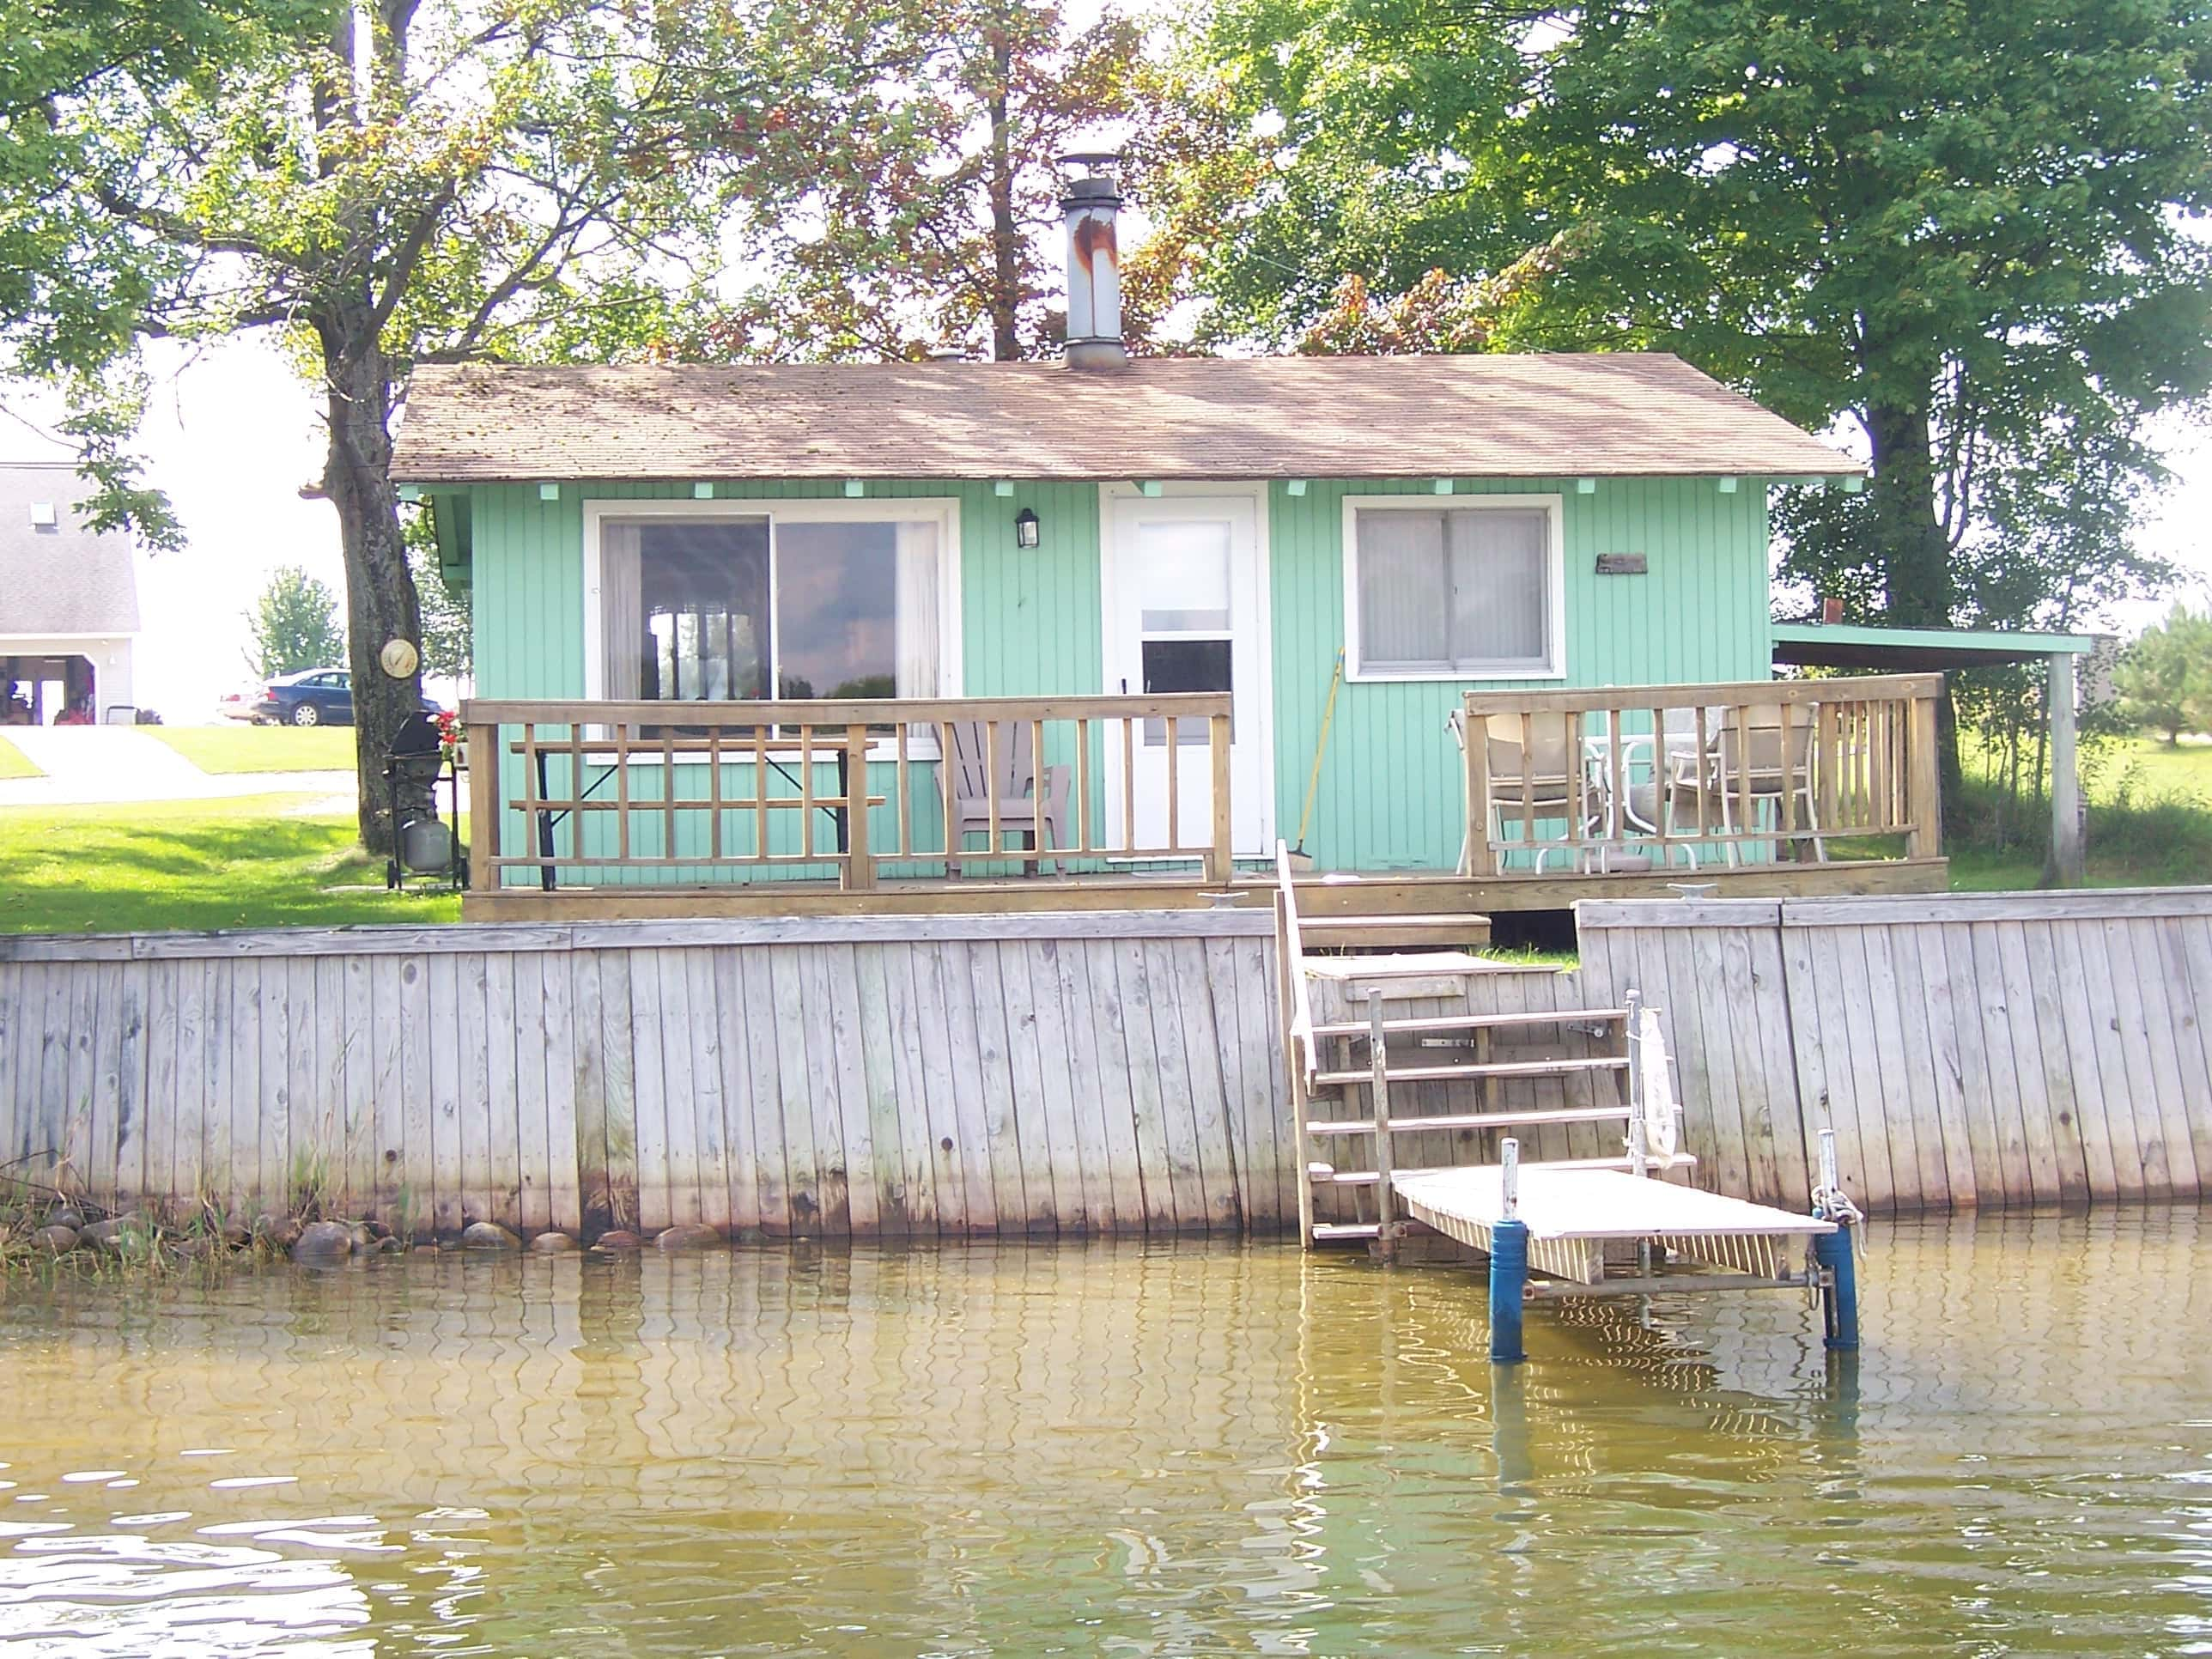 of for vacation with lake seasons michigan resort our in heart cottages right mi rent pine all the on wellston feet com to national manistee pinelakecabins over cabin sports beautiful cabins beach rental welcome sandy